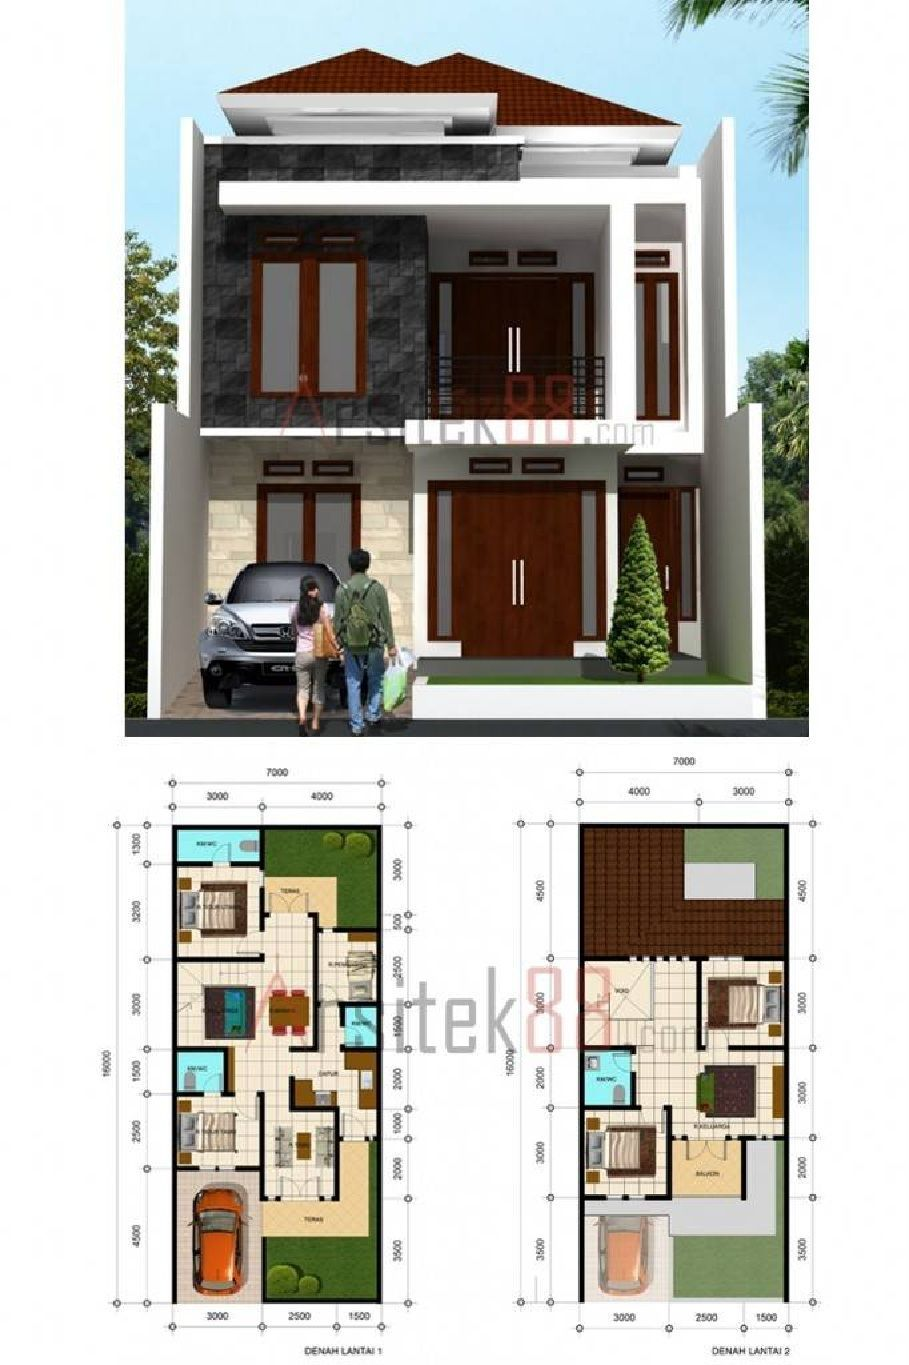 Latest House Design In 2020 Small House Exteriors Architectural Design House Plans Small House Design